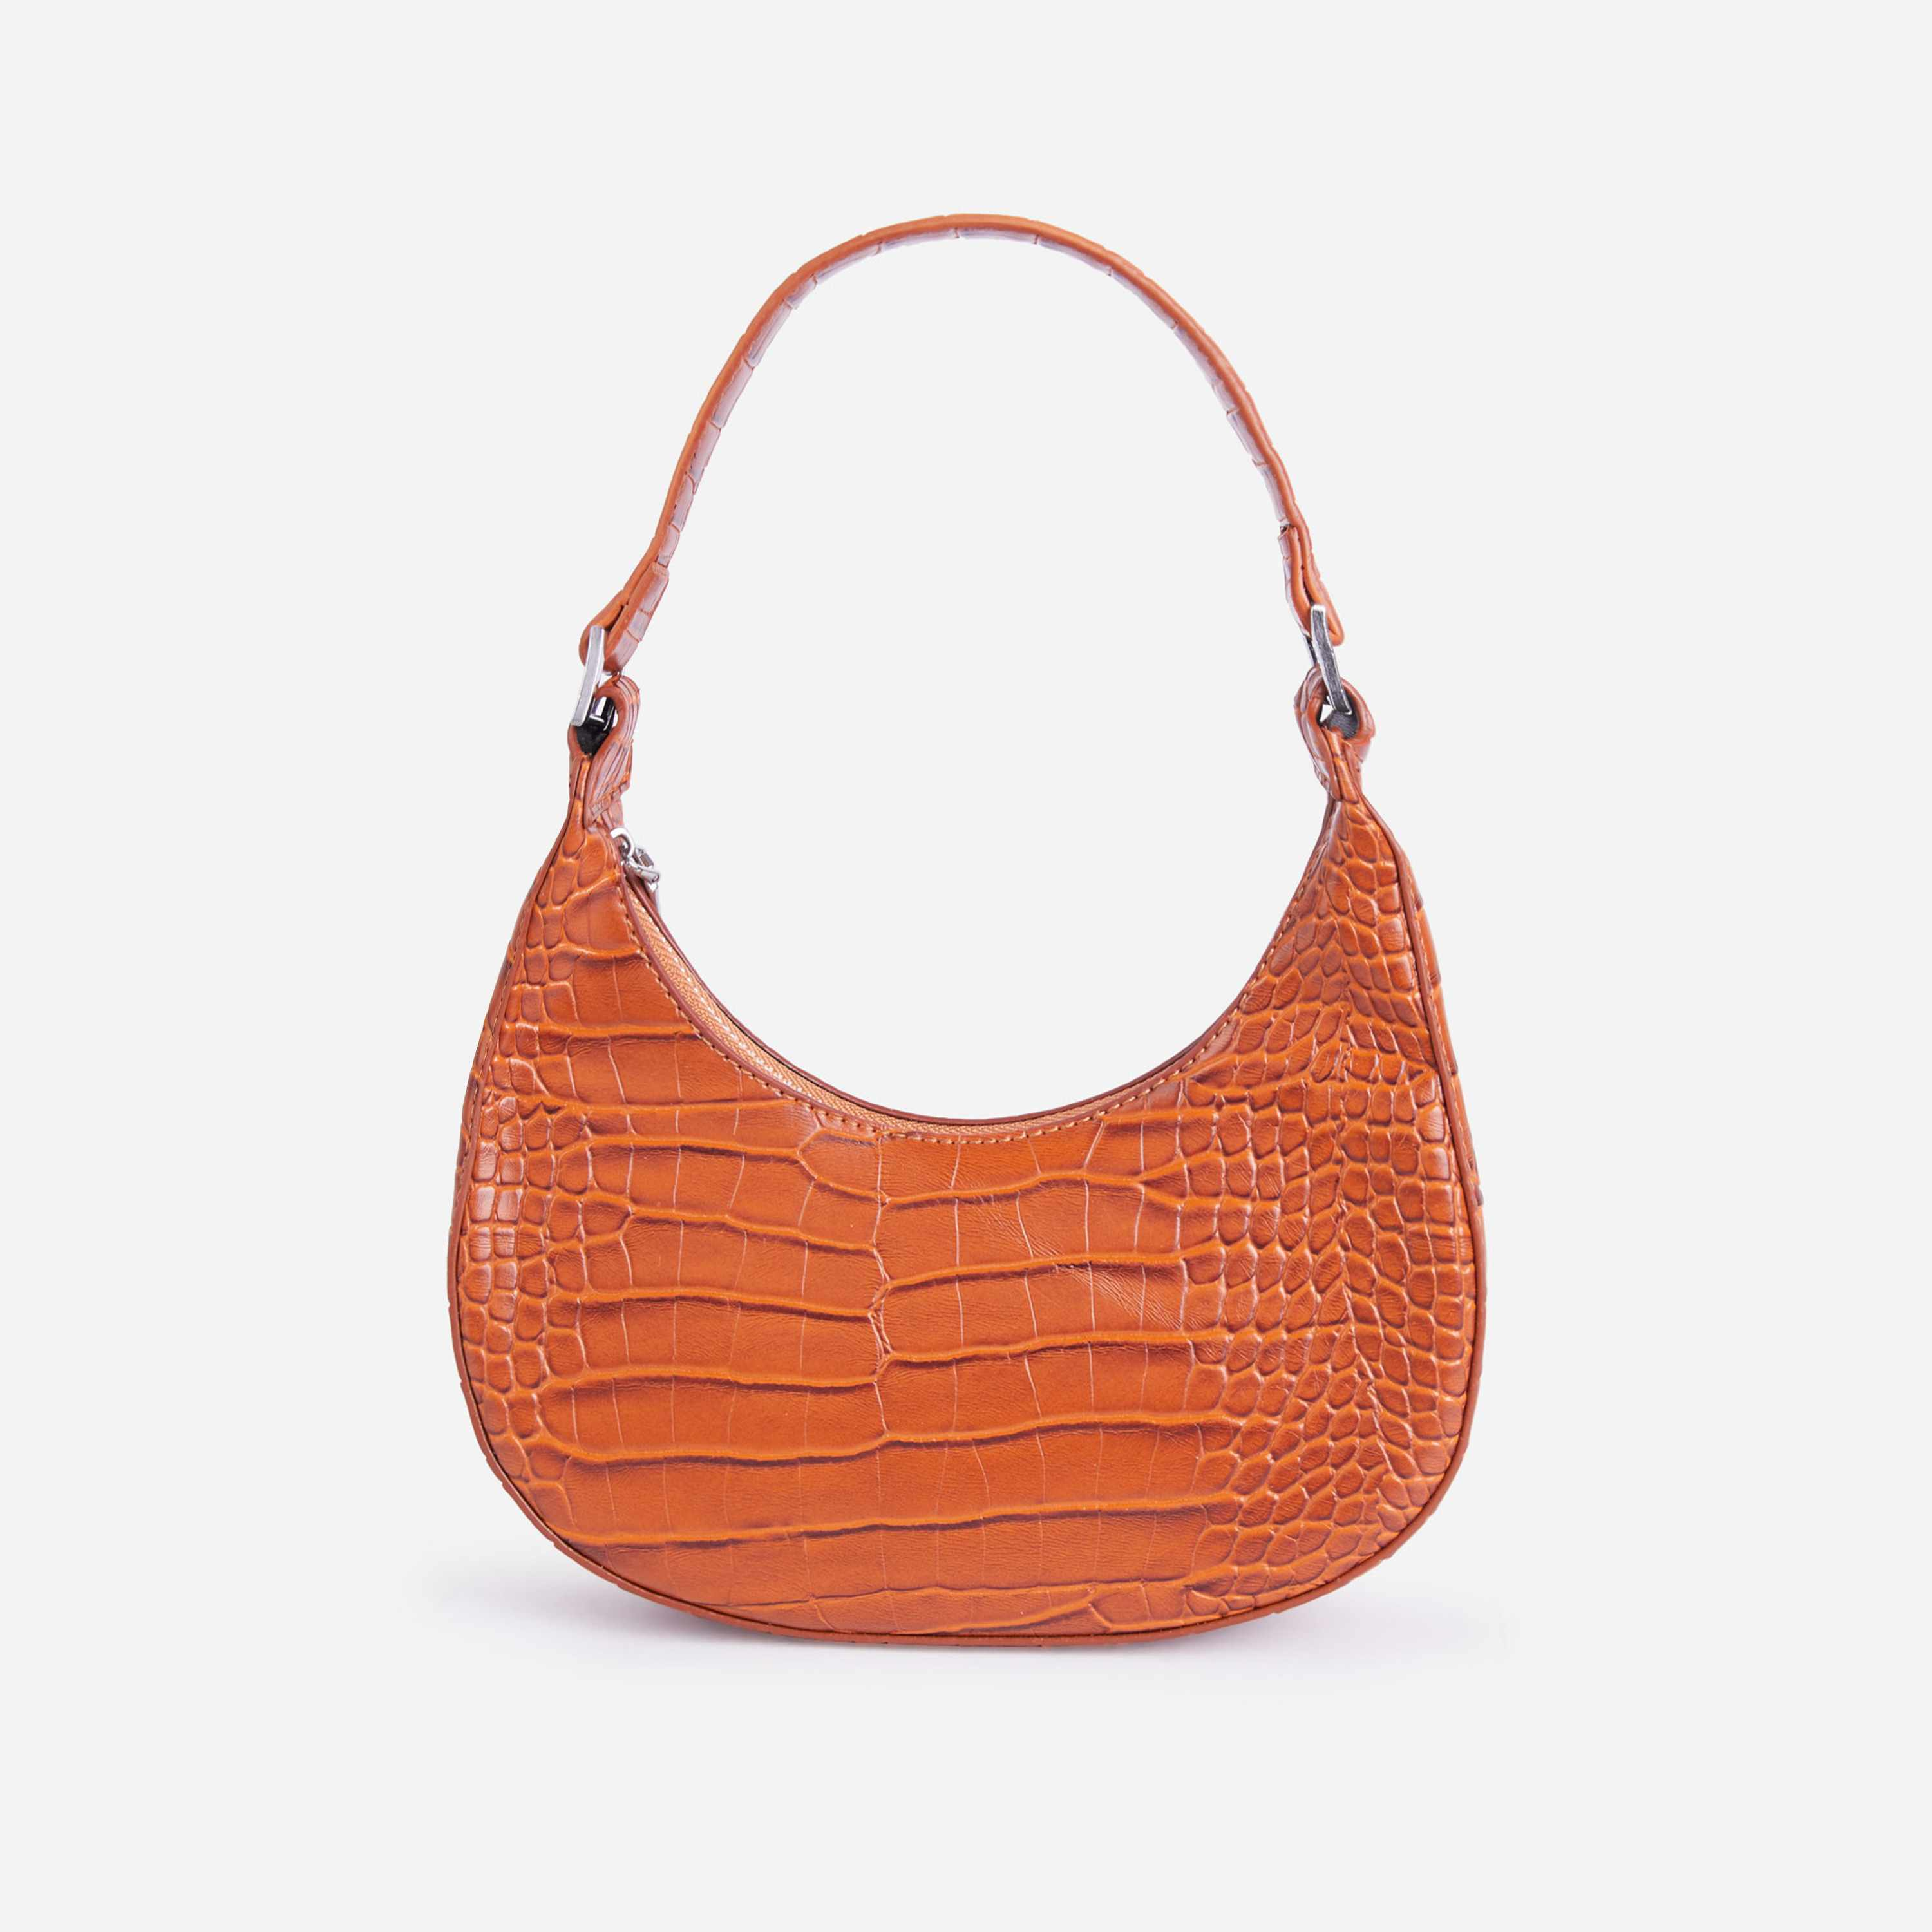 Tilly Curved Baguette Bag In Dark Brown Croc Print Faux Leather